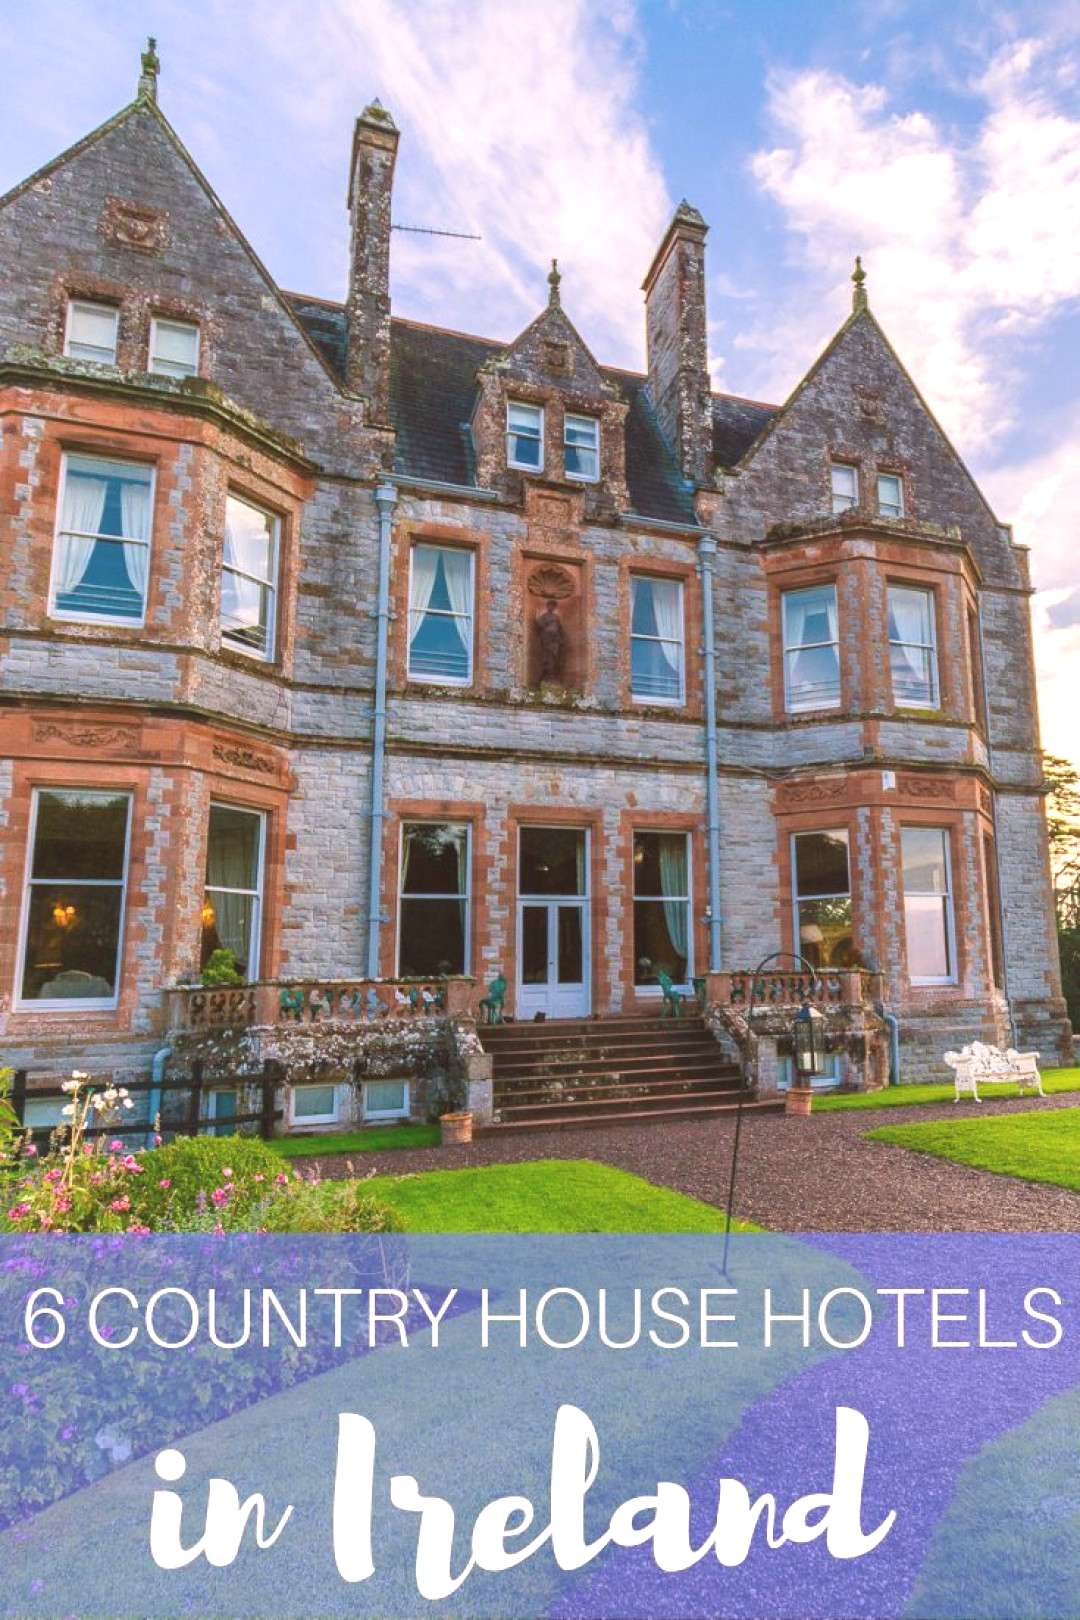 6 Beautiful Country House Hotels in Ireland When you're looking for places to stay in Ireland, you